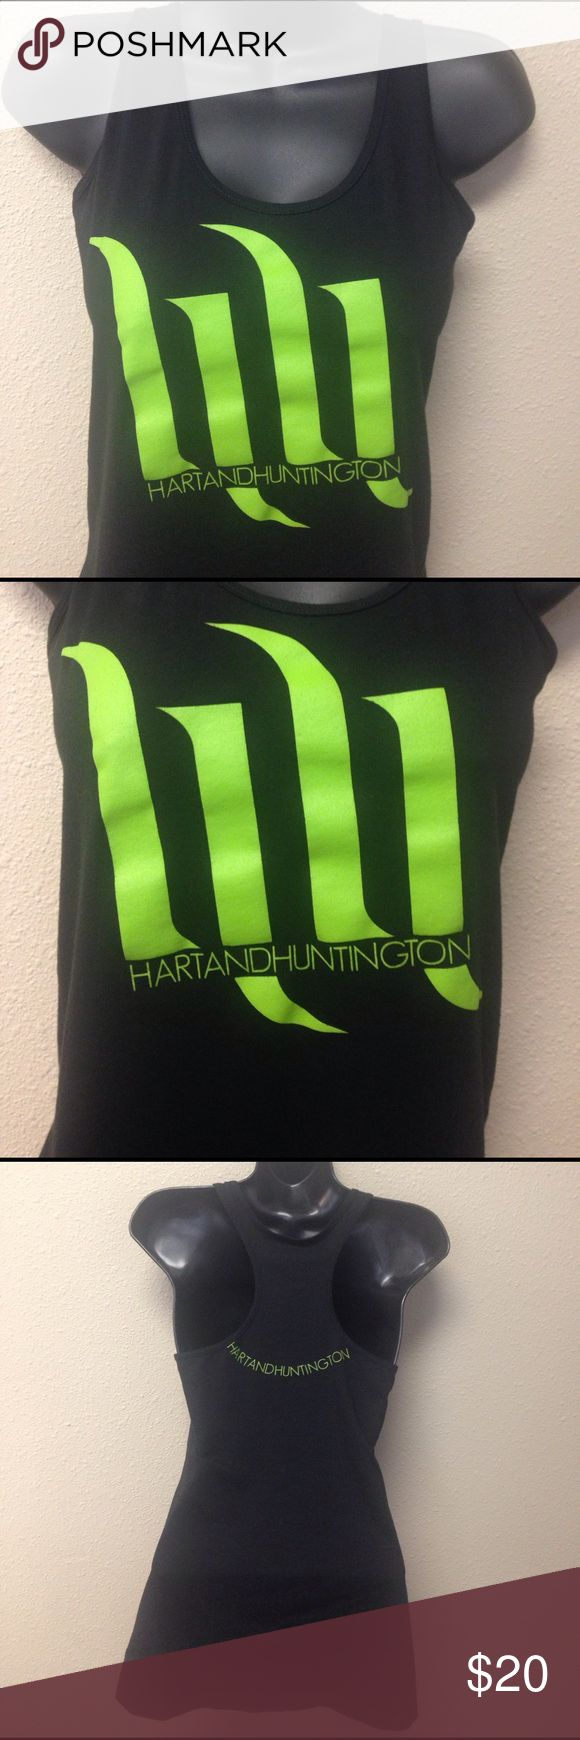 Hart and Huntington Black Logo Tank Top Excellent condition.  Worn once.  Racerback slim fitting style. Tag says large but I'm listing as a medium because it would best fit a medium. Hart and Huntington Tops Tank Tops